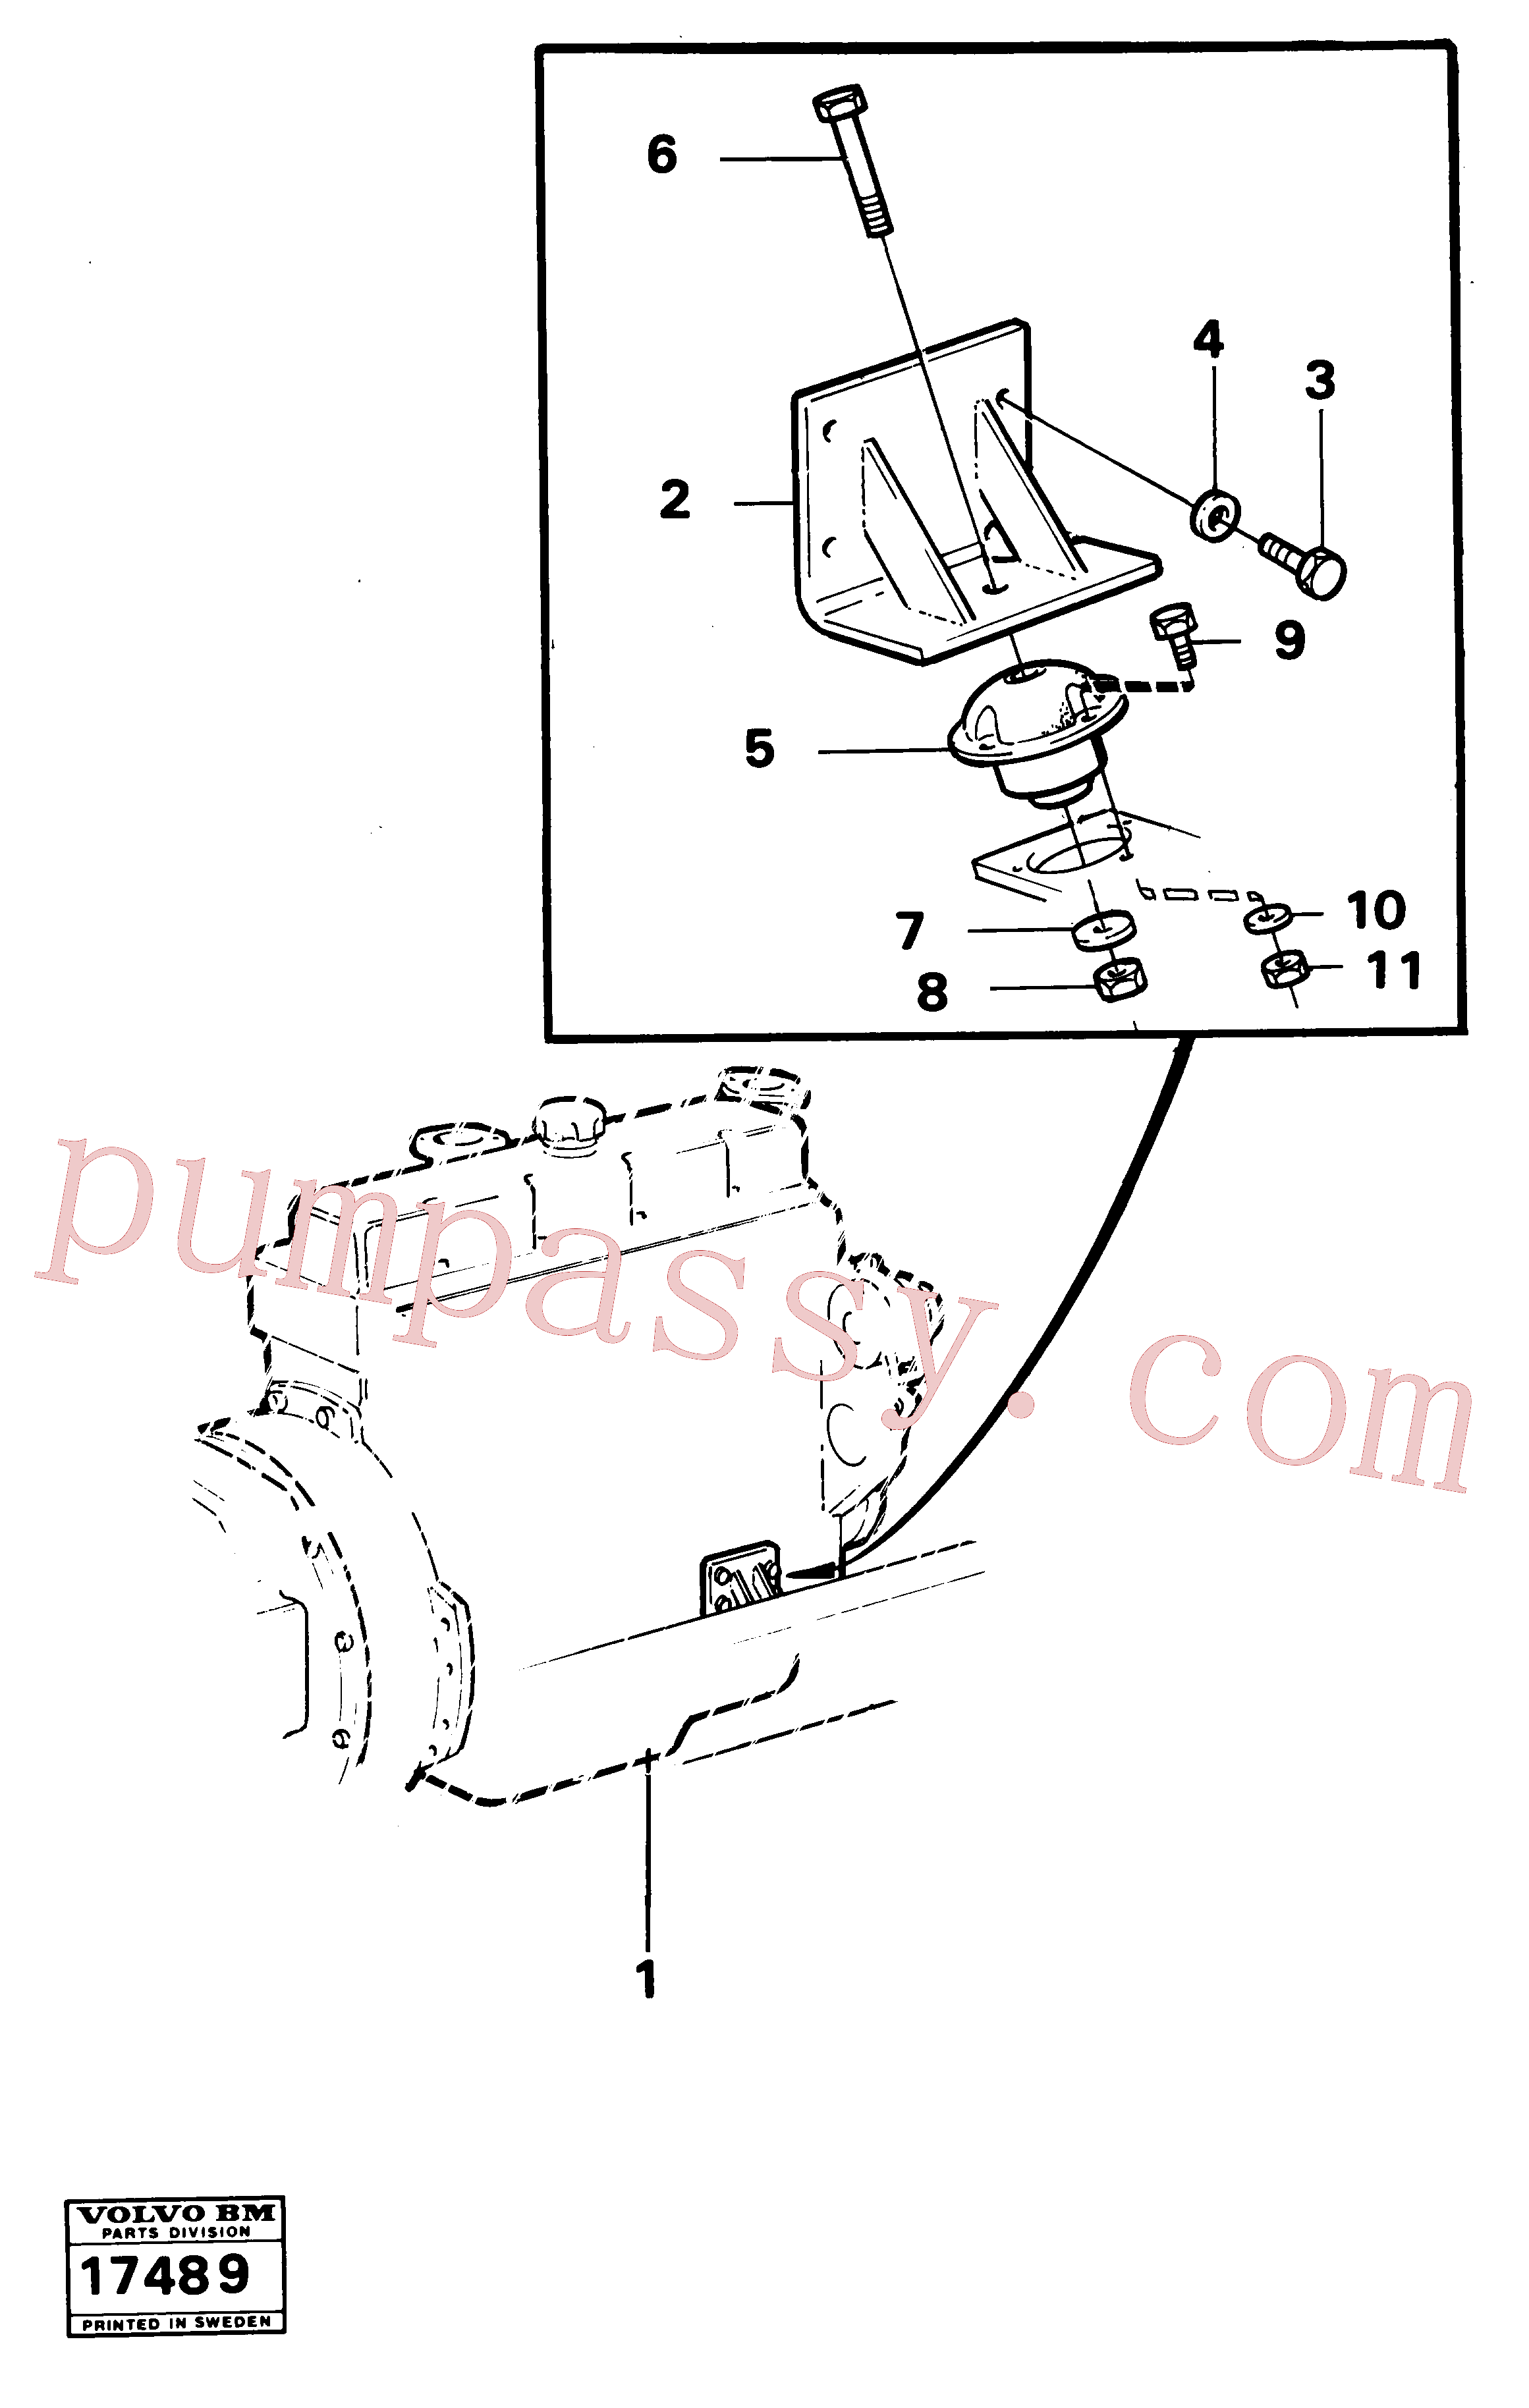 VOE955398 for Volvo Engine mounting(17489 assembly)